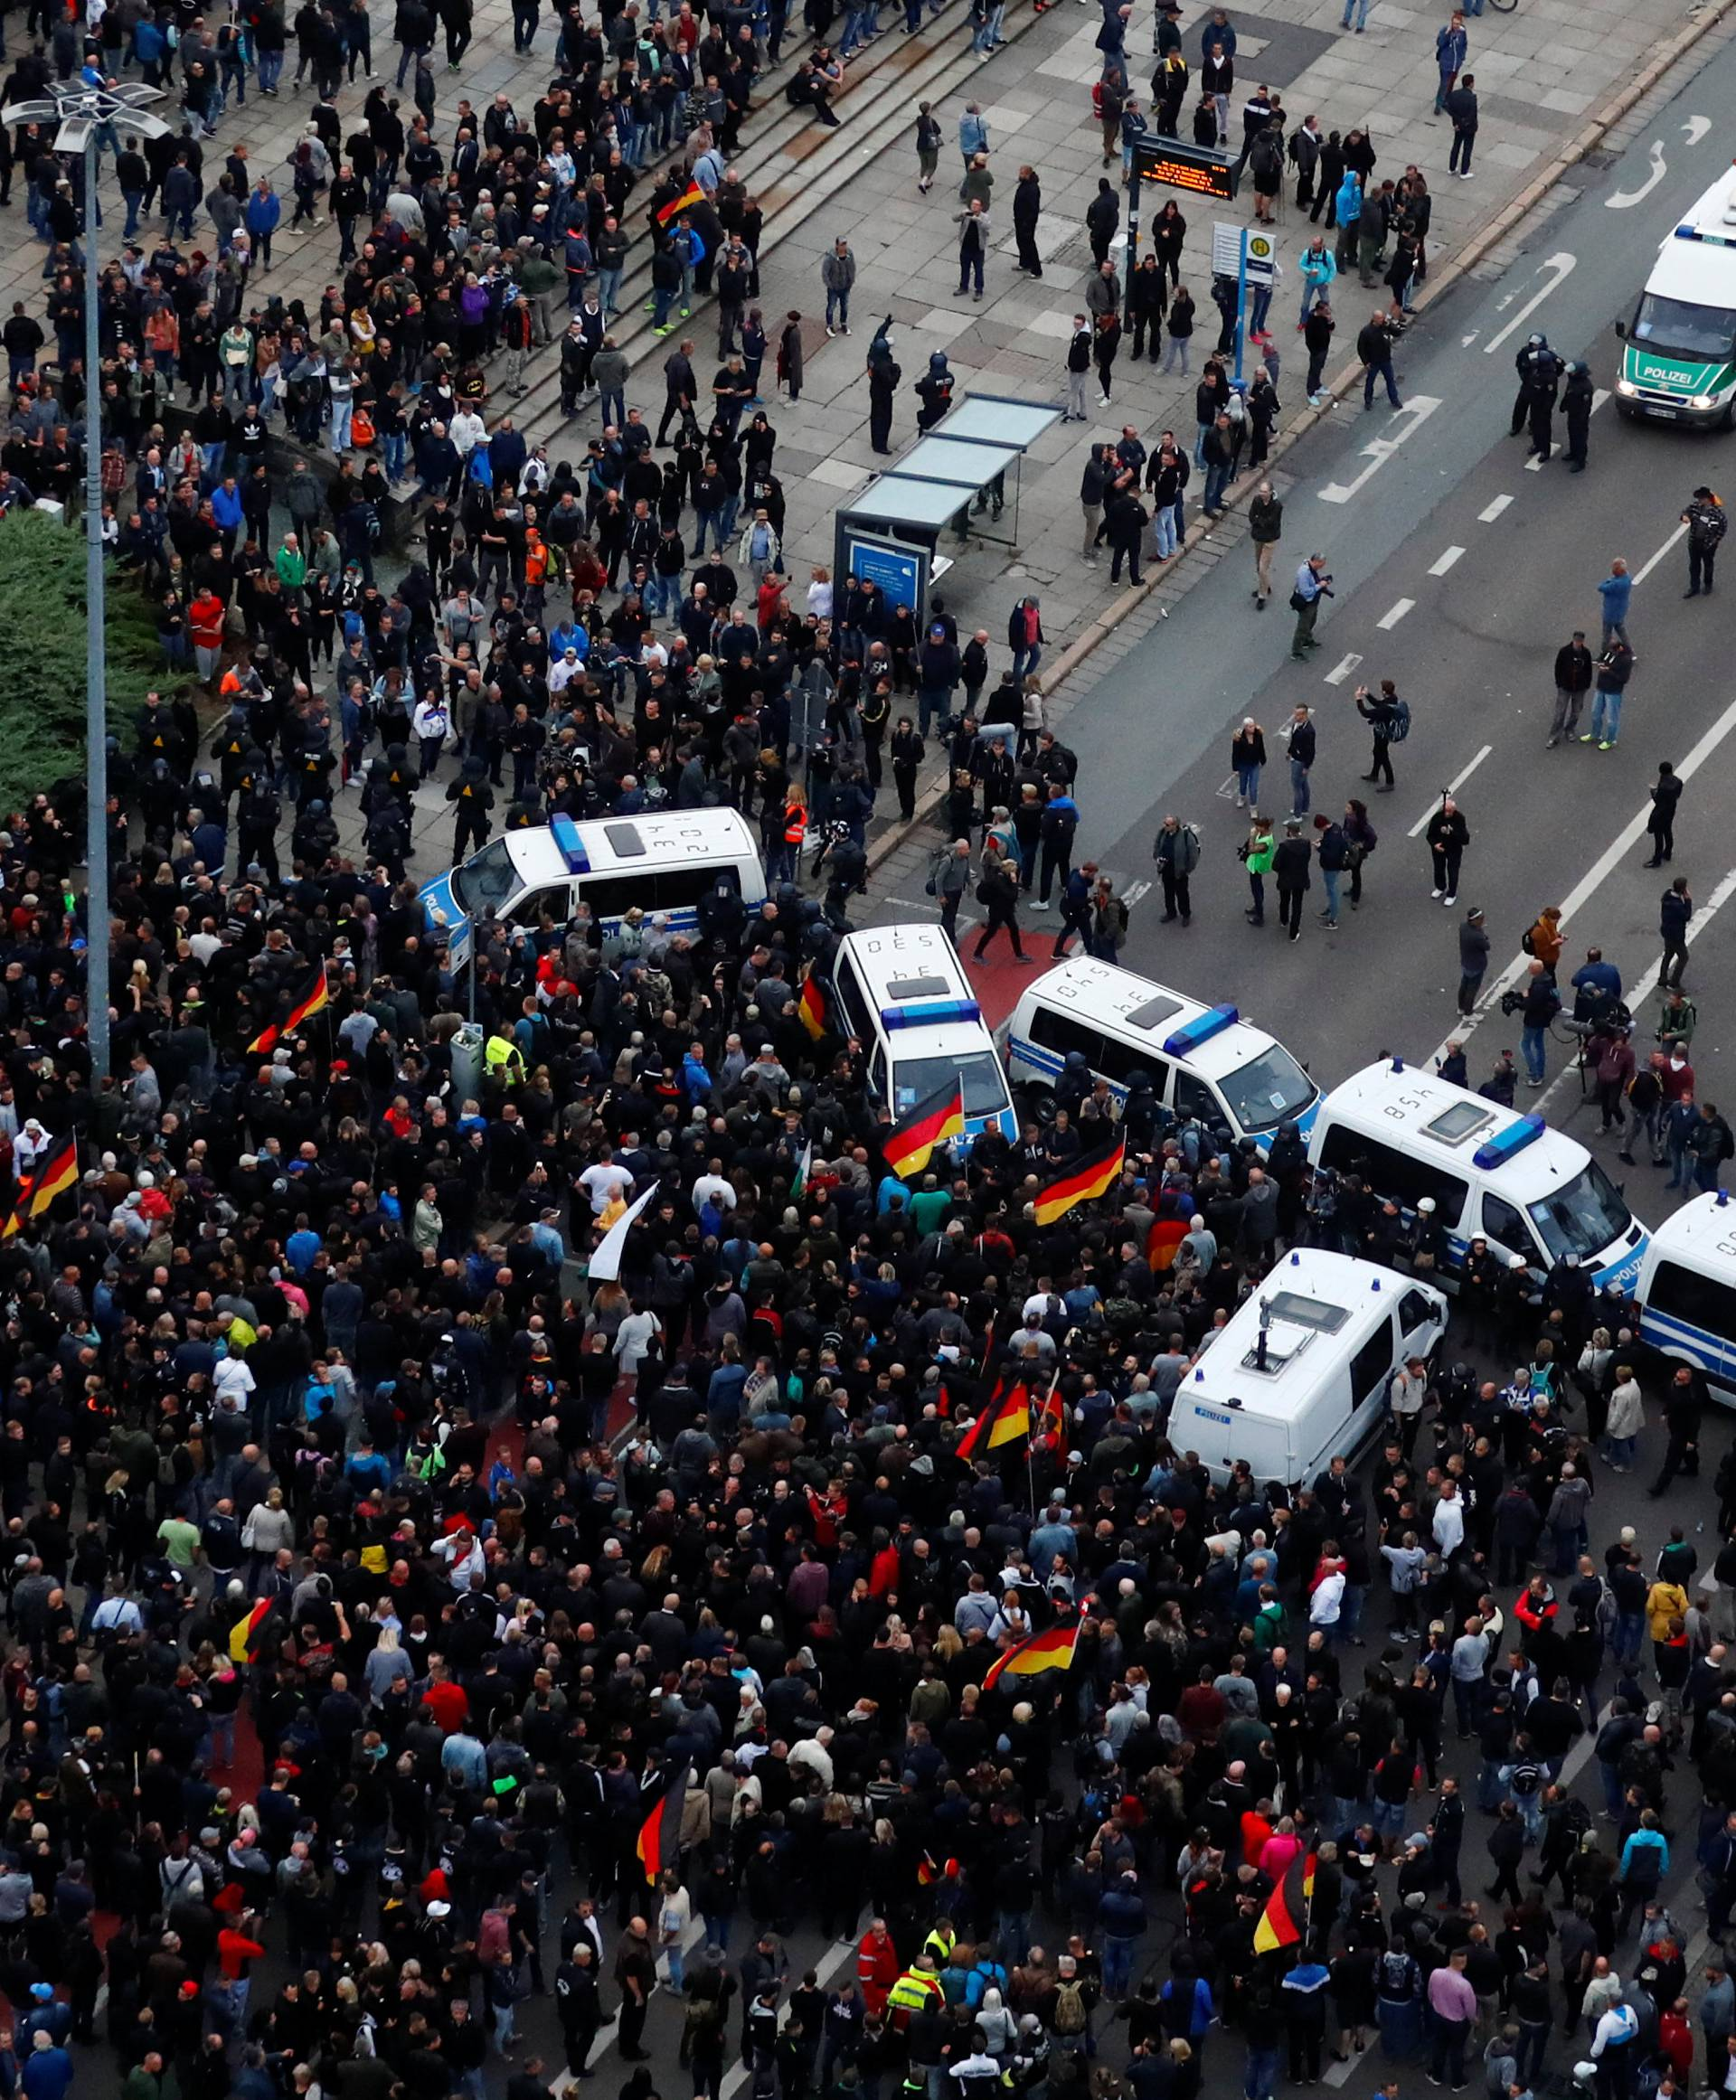 Demonstrations following the killing of a man in Chemnitz